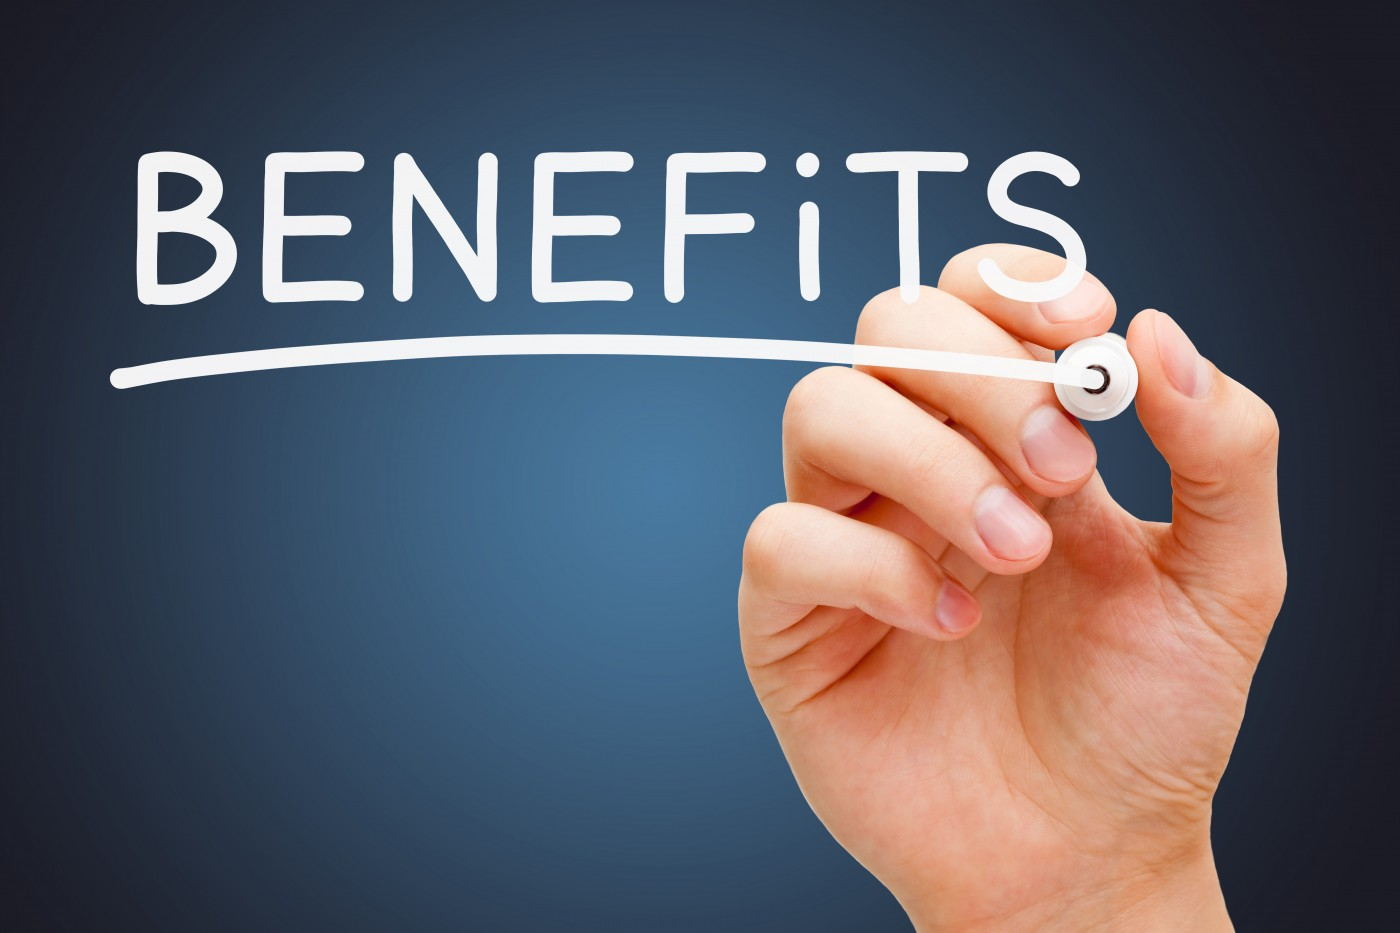 UK Multiple Sclerosis Society Proposes Urgent Revision of the Current Disability Benefits System for MS Patients